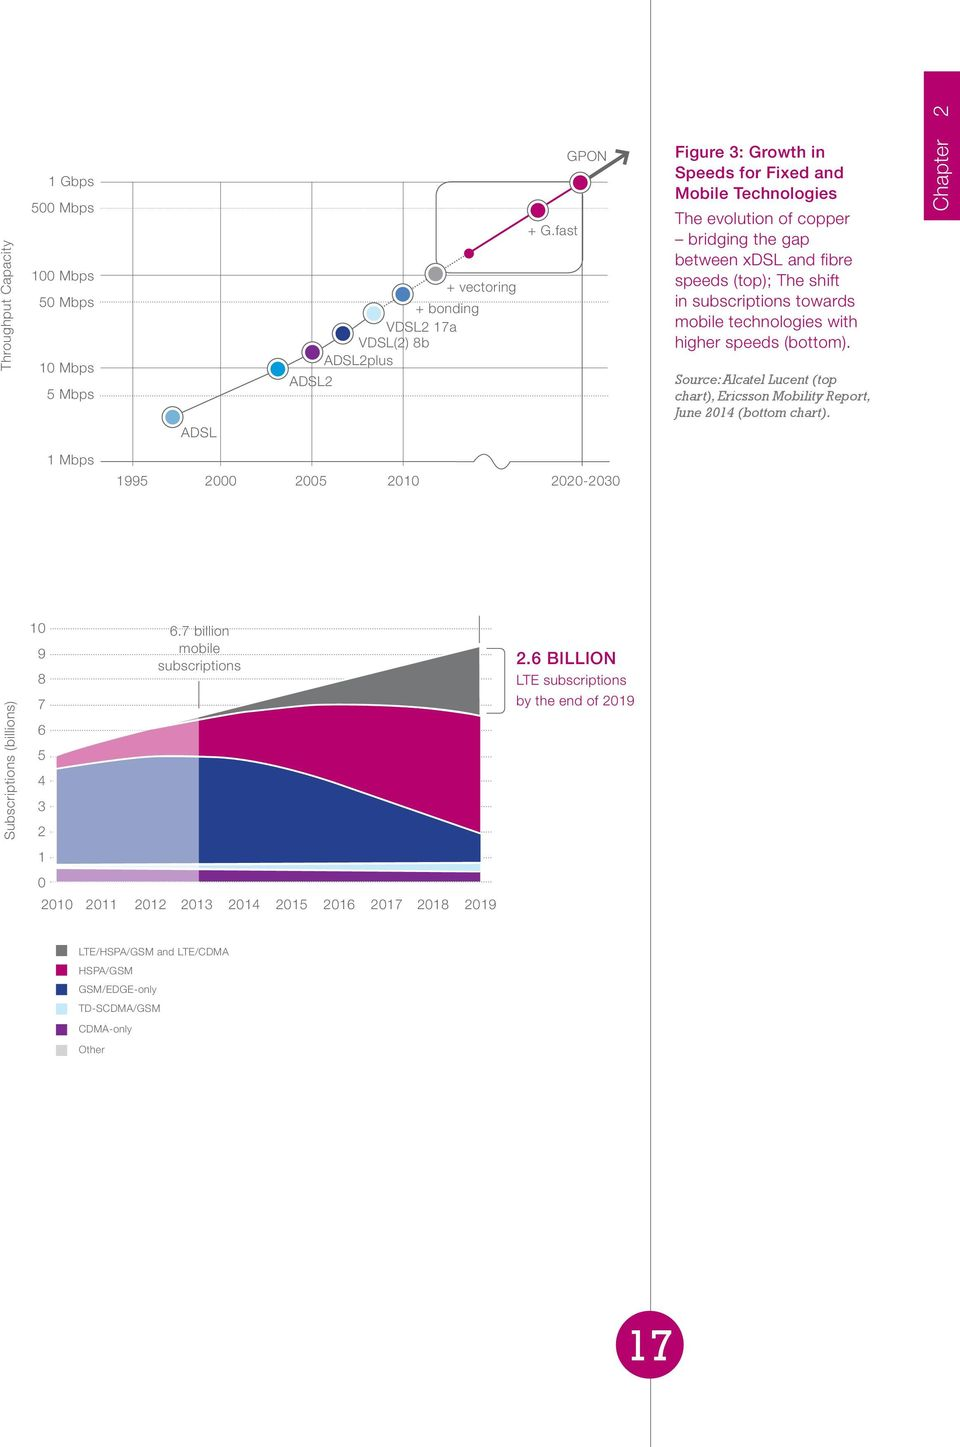 technologies with higher speeds (bottom). Source: Alcatel Lucent (top chart), Ericsson Mobility Report, June 2014 (bottom chart). Chapter 2 1 Mbps 1995 2000 2005 2010 2020-2030 10 9 8 6.